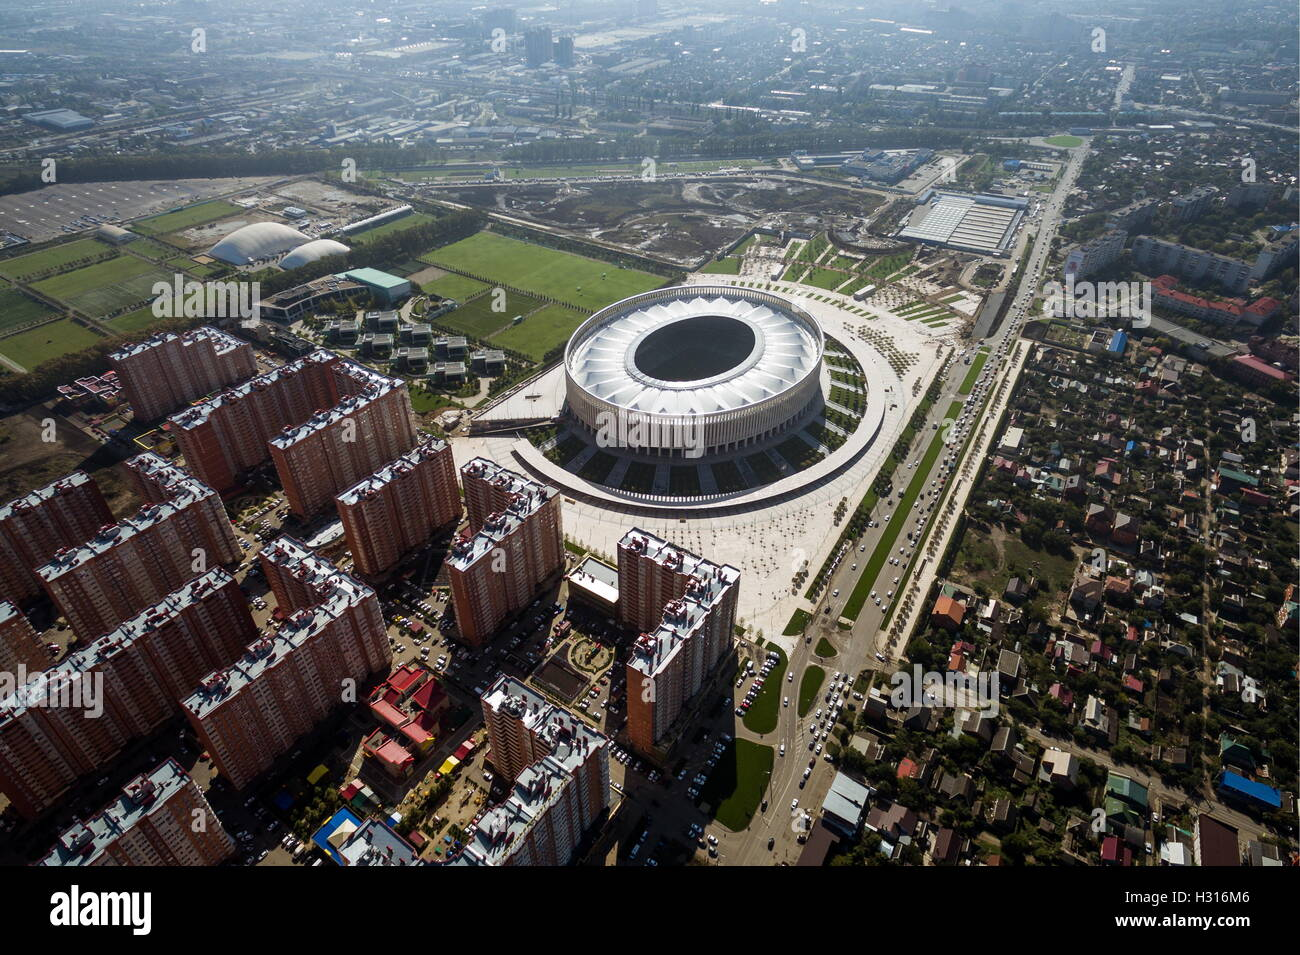 Krasnodar russia 3rd oct 2016 a view of the krasnodar stadium krasnodar russia 3rd oct 2016 a view of the krasnodar stadium the arena has a capacity of 33000 people and has received the highest category thecheapjerseys Images